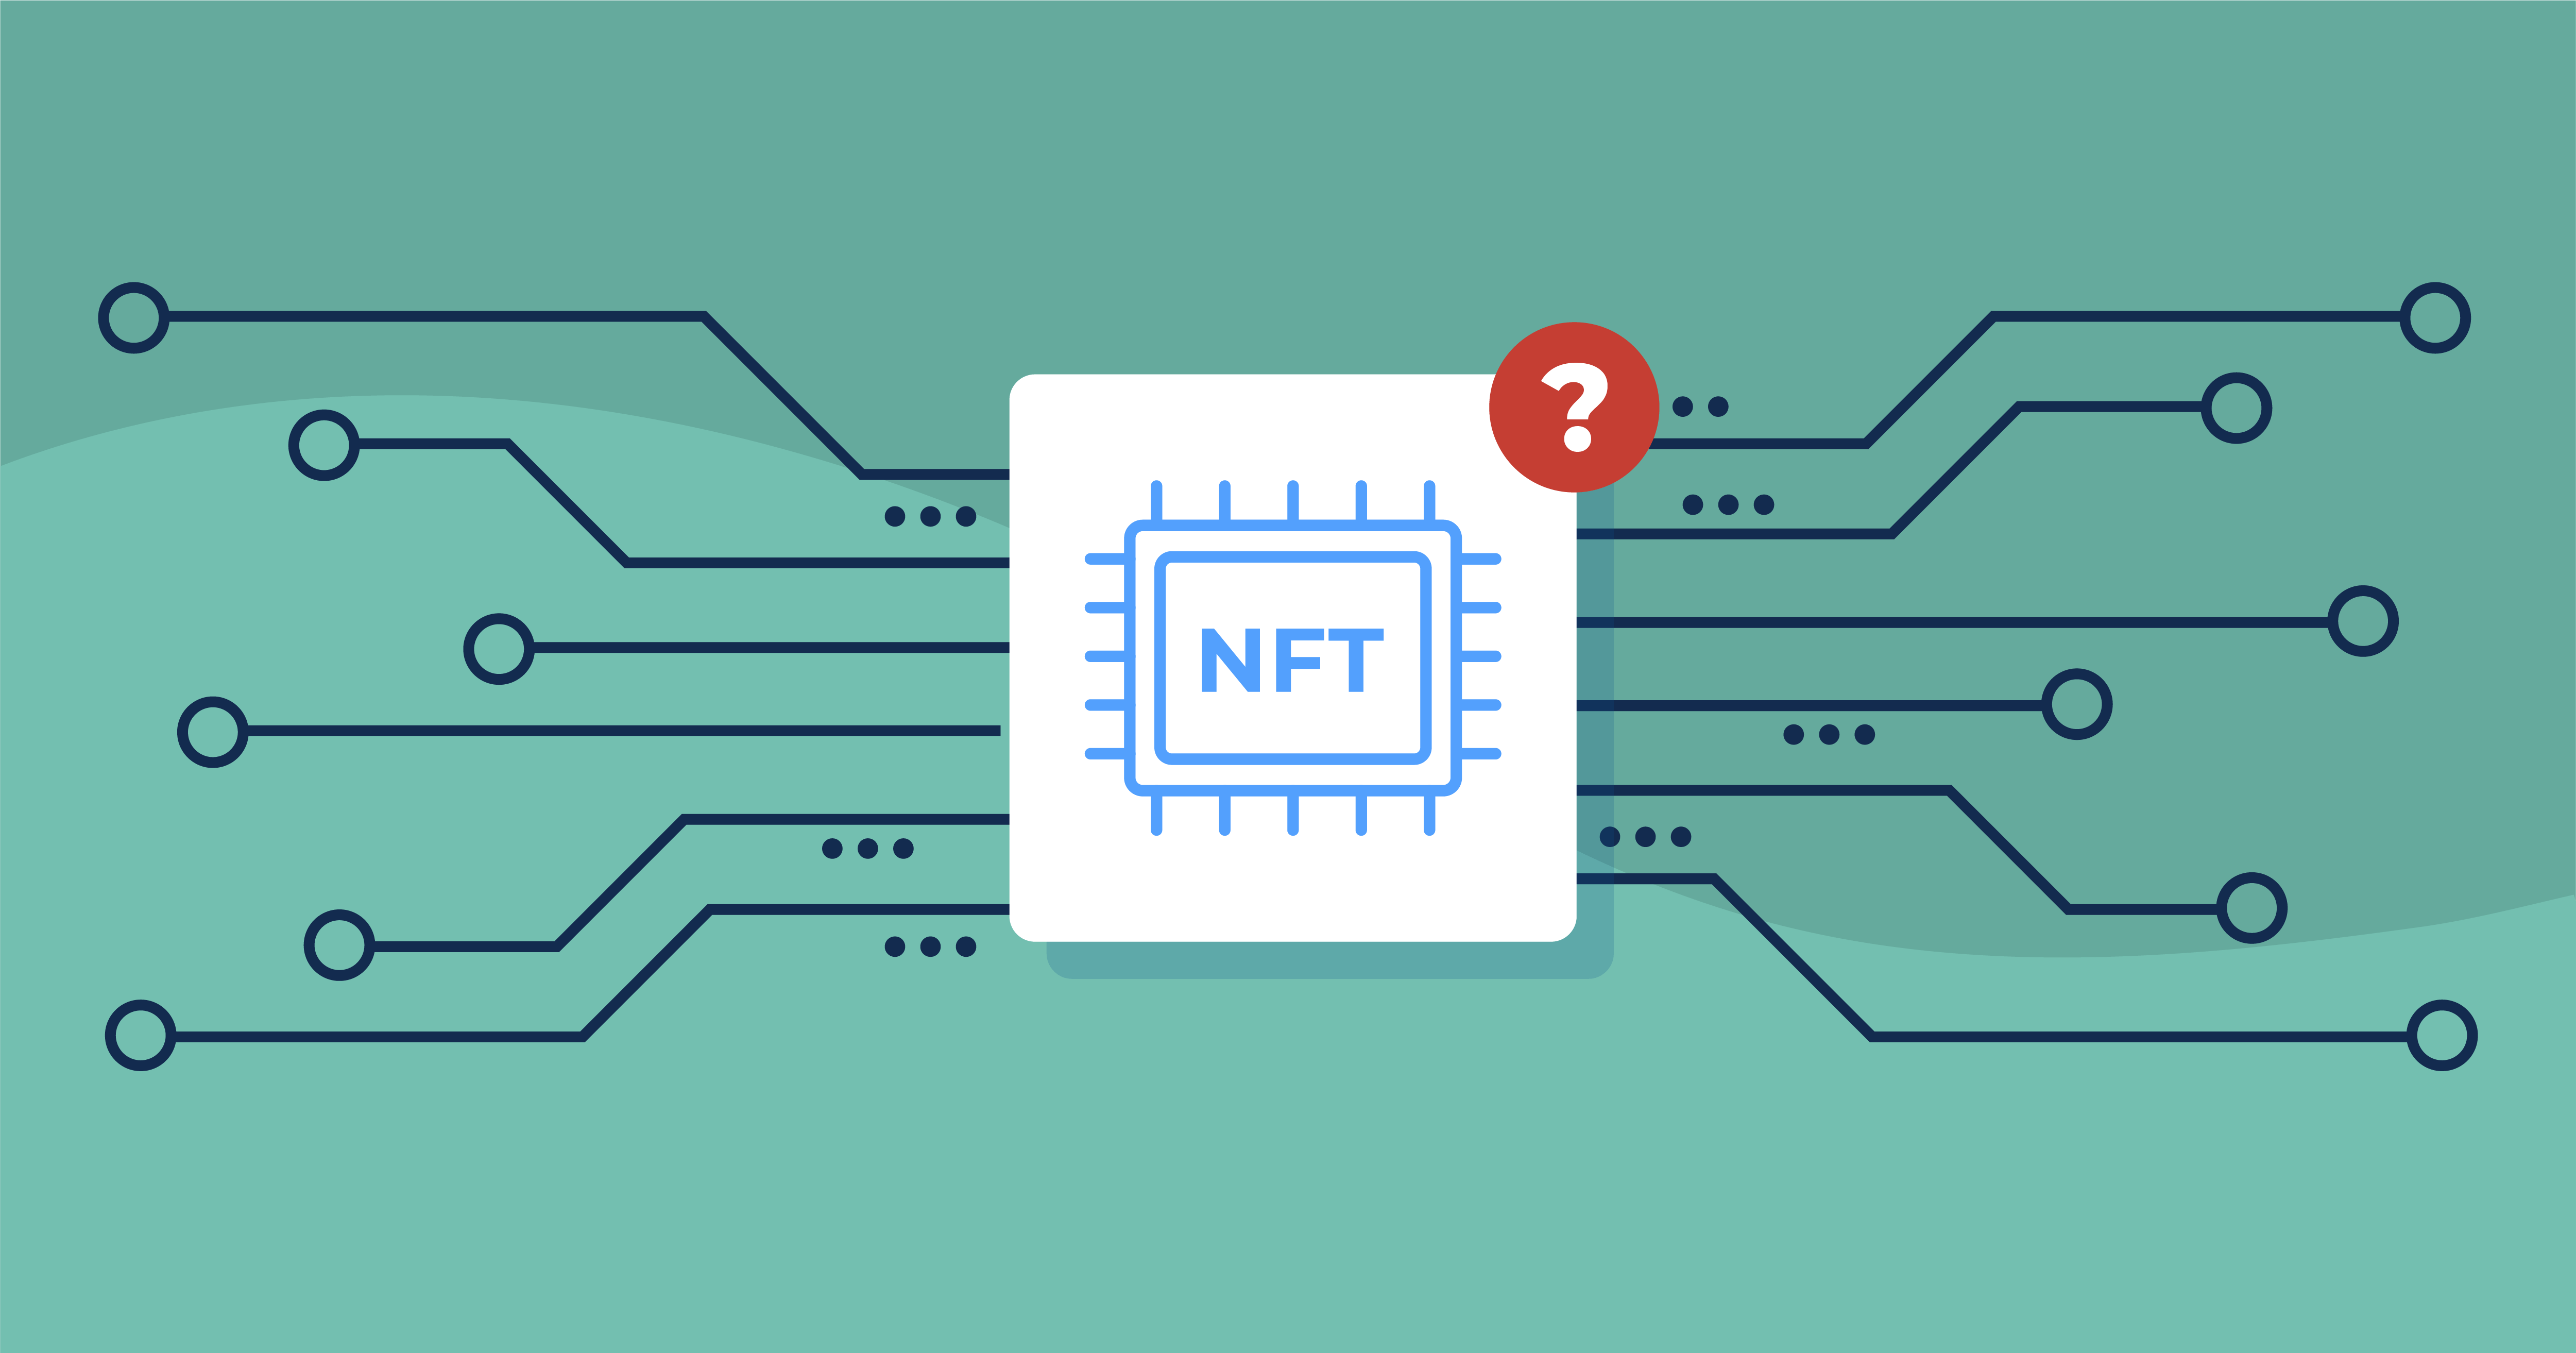 How Are NFT's Taxed?